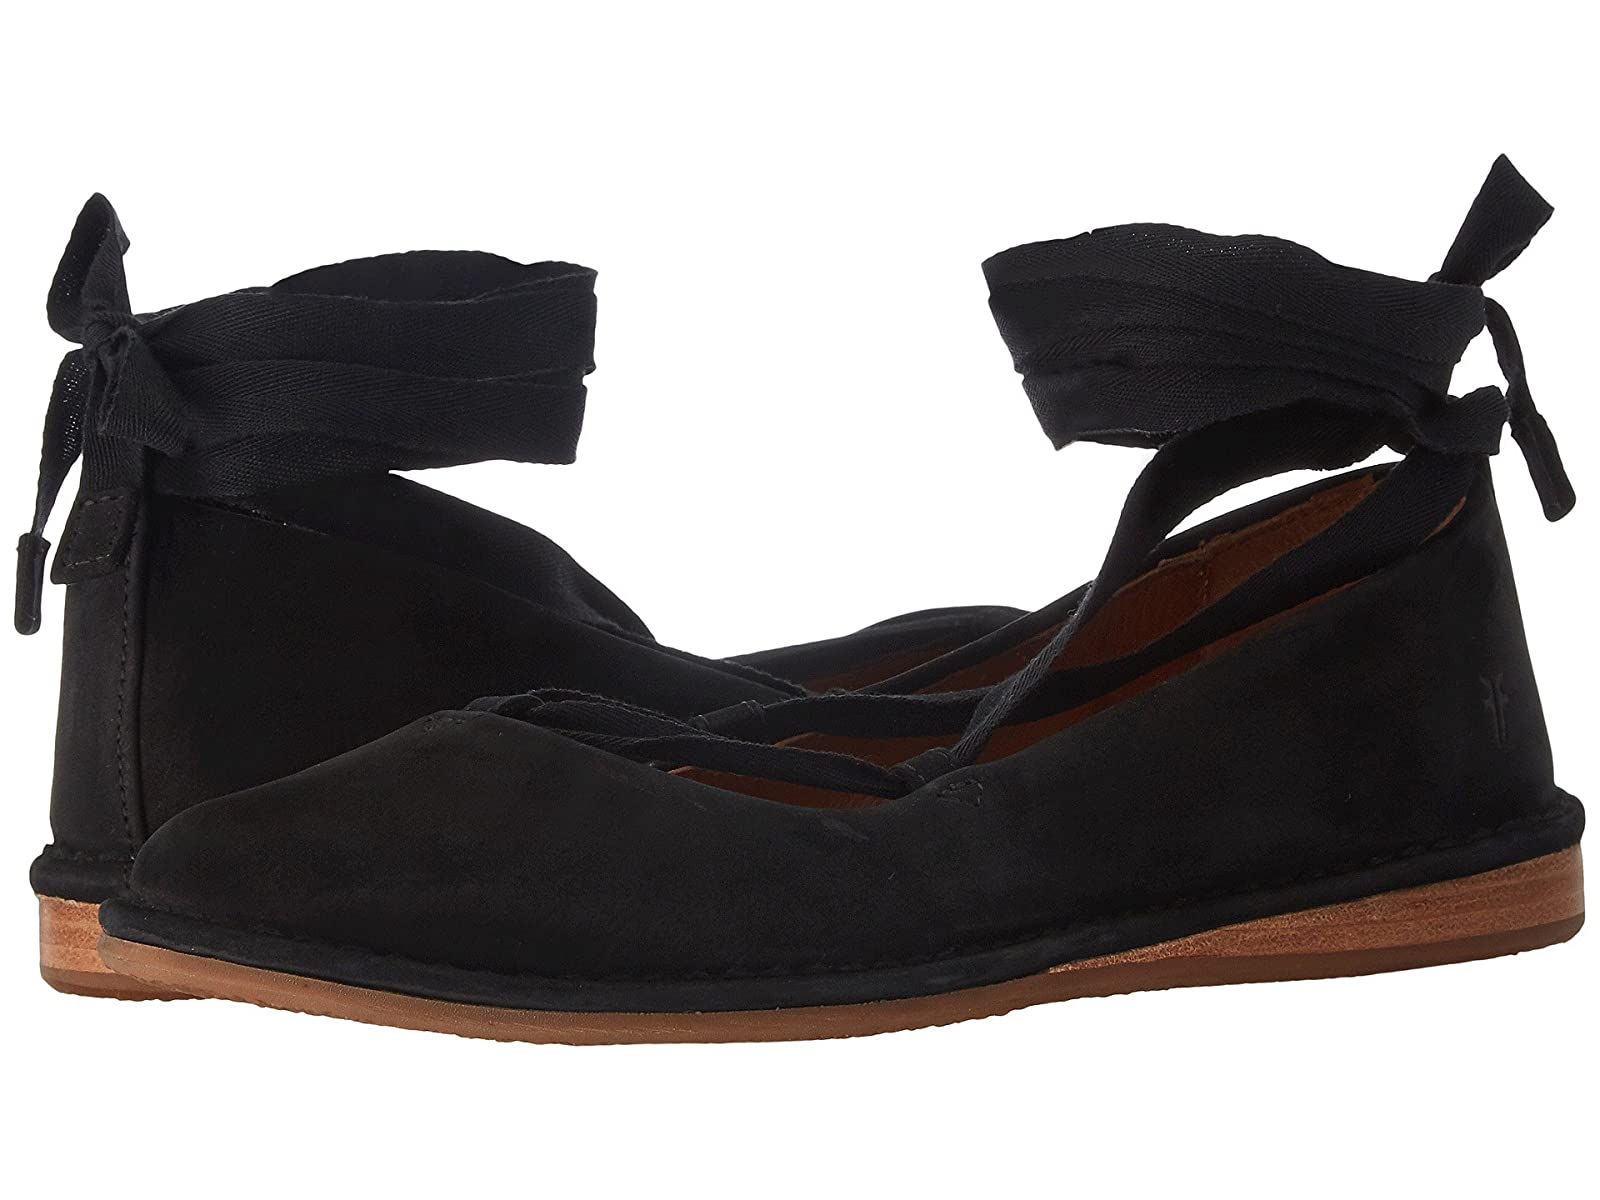 Frye Helena Ankle TieCheap and distinctive eye-catching shoes